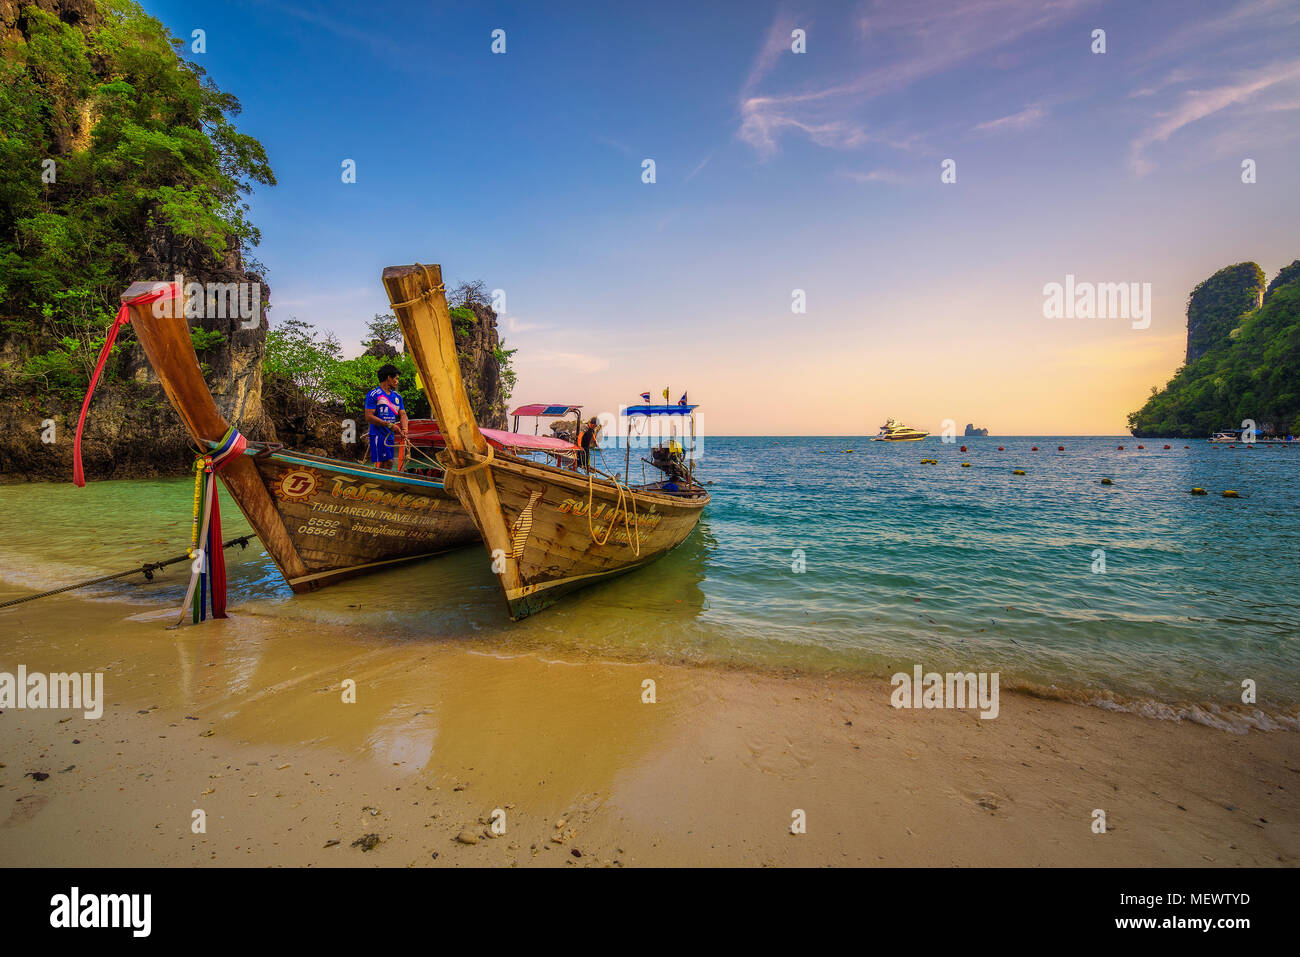 Thai longtail boats parked at the Koh Hong island in Thailand - Stock Image